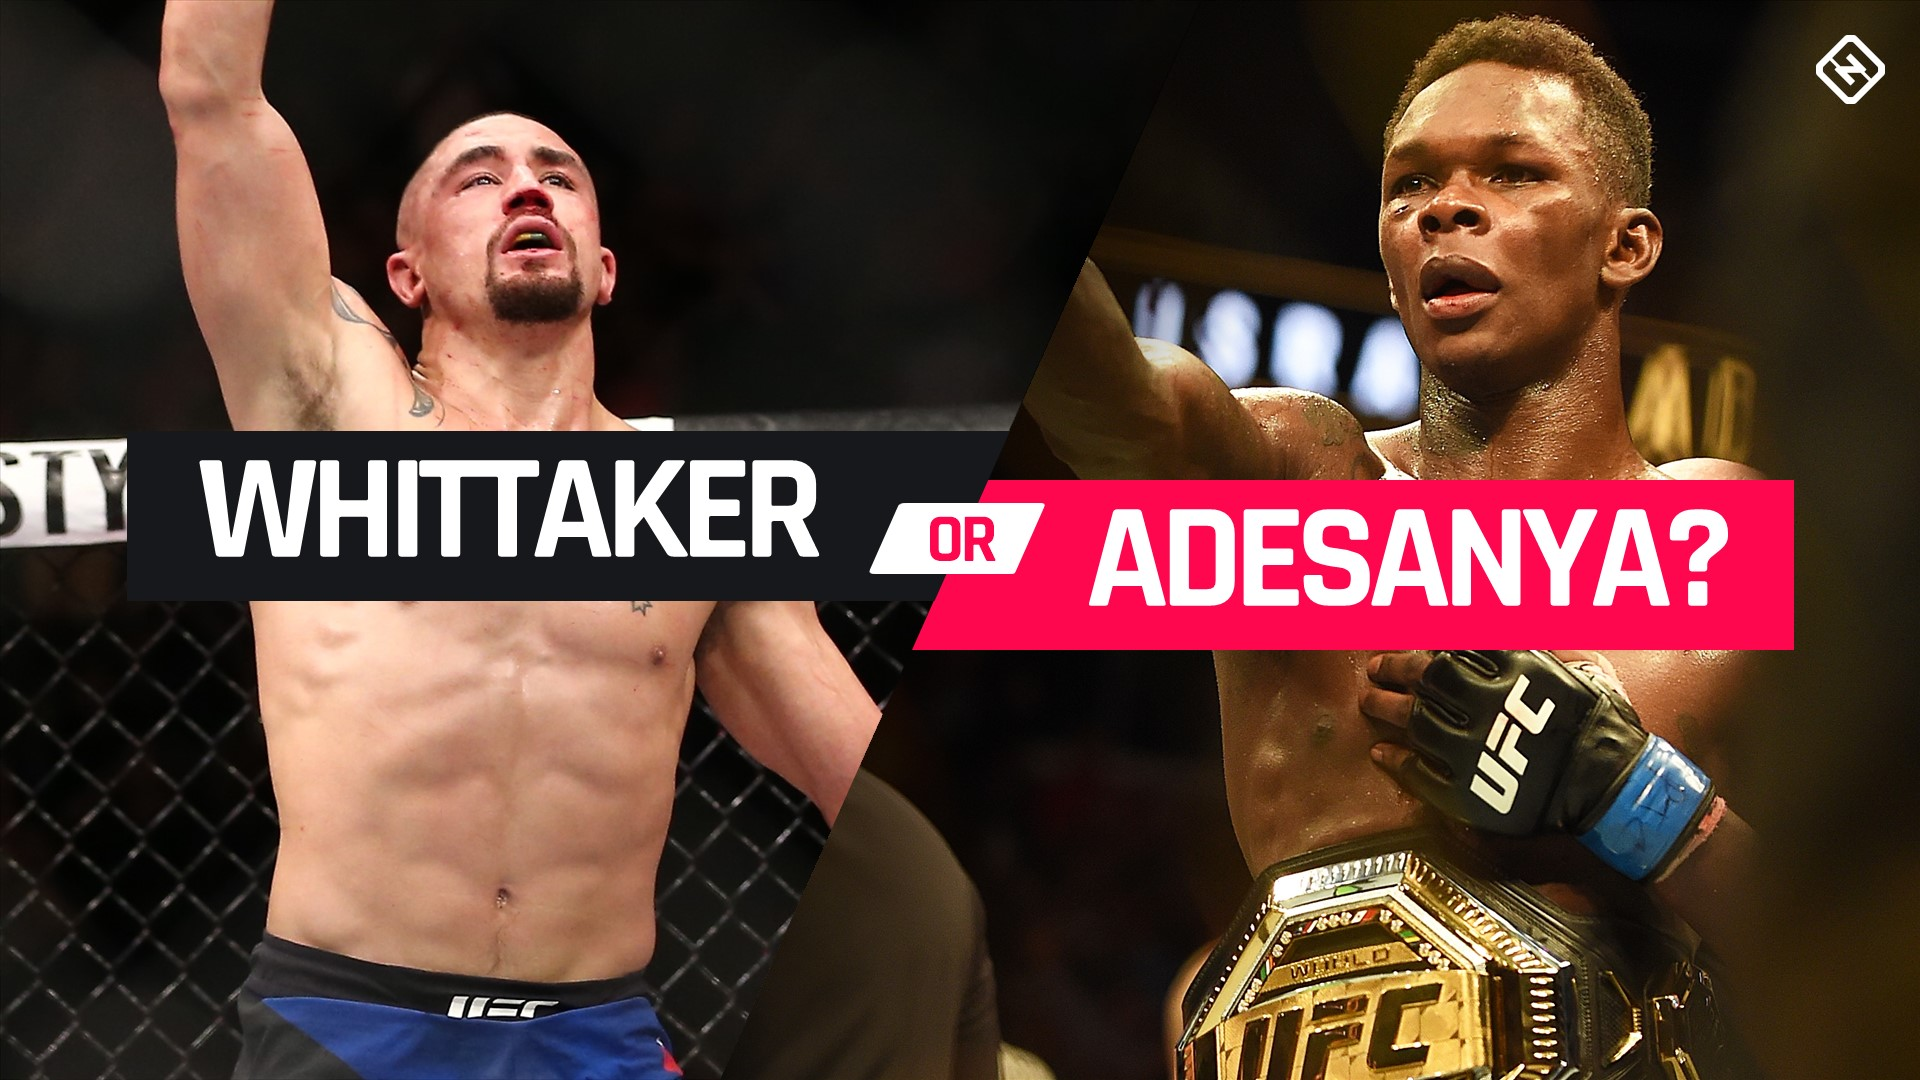 Robert Whittaker Dana White Interested In Jon Jones vs. Israel Adesanya, But First ... Whittaker: Instead of improving the sport (and themselves), everyone in UFC just sh*ts on each other Robert Whittaker Taking Israel Adesanya Fight Seriously Despite Lack of Trash Talk Robert Whittaker: I'm not a nice guy, I just don't want to be a sh-t person Robert Whittaker won't get into trash talk with Israel Adesanya: 'I'm not a part of that little game' Robert Whittaker Blasts UFC Roster: 'They Want To S–t On Each Other!' Former UFC welterweight title challenger Darren Till teases move to middleweight Former UFC welterweight title challenger Darren Till hints at middleweight move Darren Till Hints At Move Up To Middleweight Midnight Mania! Anderson Silva says his son sometimes beats him in sparring Robert Whittaker Feels 'On Top Of The World' Ahead Of UFC 243 Can anyone bump Jones, Nunes from pound-for-pound No. 1 spots? Unfiltered Episode 306: Israel Adesanya, Michael Chiesa and UFC 239 Recap Yorgan De Castro vs. Justin Tafa set for UFC 243 Israel Adesanya says Jon Jones was great when 'there wasn't USADA around,' Jones responds Israel Adesanya slams 'meth head' Robert Whittaker for UFC 243 staredown Several new faces pop up, make moves in the divisional rankings Video: Israel Adesanya on Robert Whittaker: 'He needs Jon Jones or God to help him beat me' After winning lightweight title, Tony Ferguson will 'knockout everybody' at welterweight Israel Adesanya says Robert Whittaker reminded him of a 'meth head' at UFC summer press conference face-off Michael Bisping Believes Robert Whittaker Will Make Israel Adesanya 'Eat His Words' Trash talk? Memes? Robert Whittaker doesn't understand why Israel Adesanya is so upset UFC Half-Year Awards: Best Fight Of 2019 So Far Israel Adesanya: Robert Whittaker title fight 'definitely' in Australia Sherdog's Pound-for-Pound Top 10 Rankings Israel Adesanya predicts record UFC crowd for middleweight title fight with Robert Whittaker Episode 5